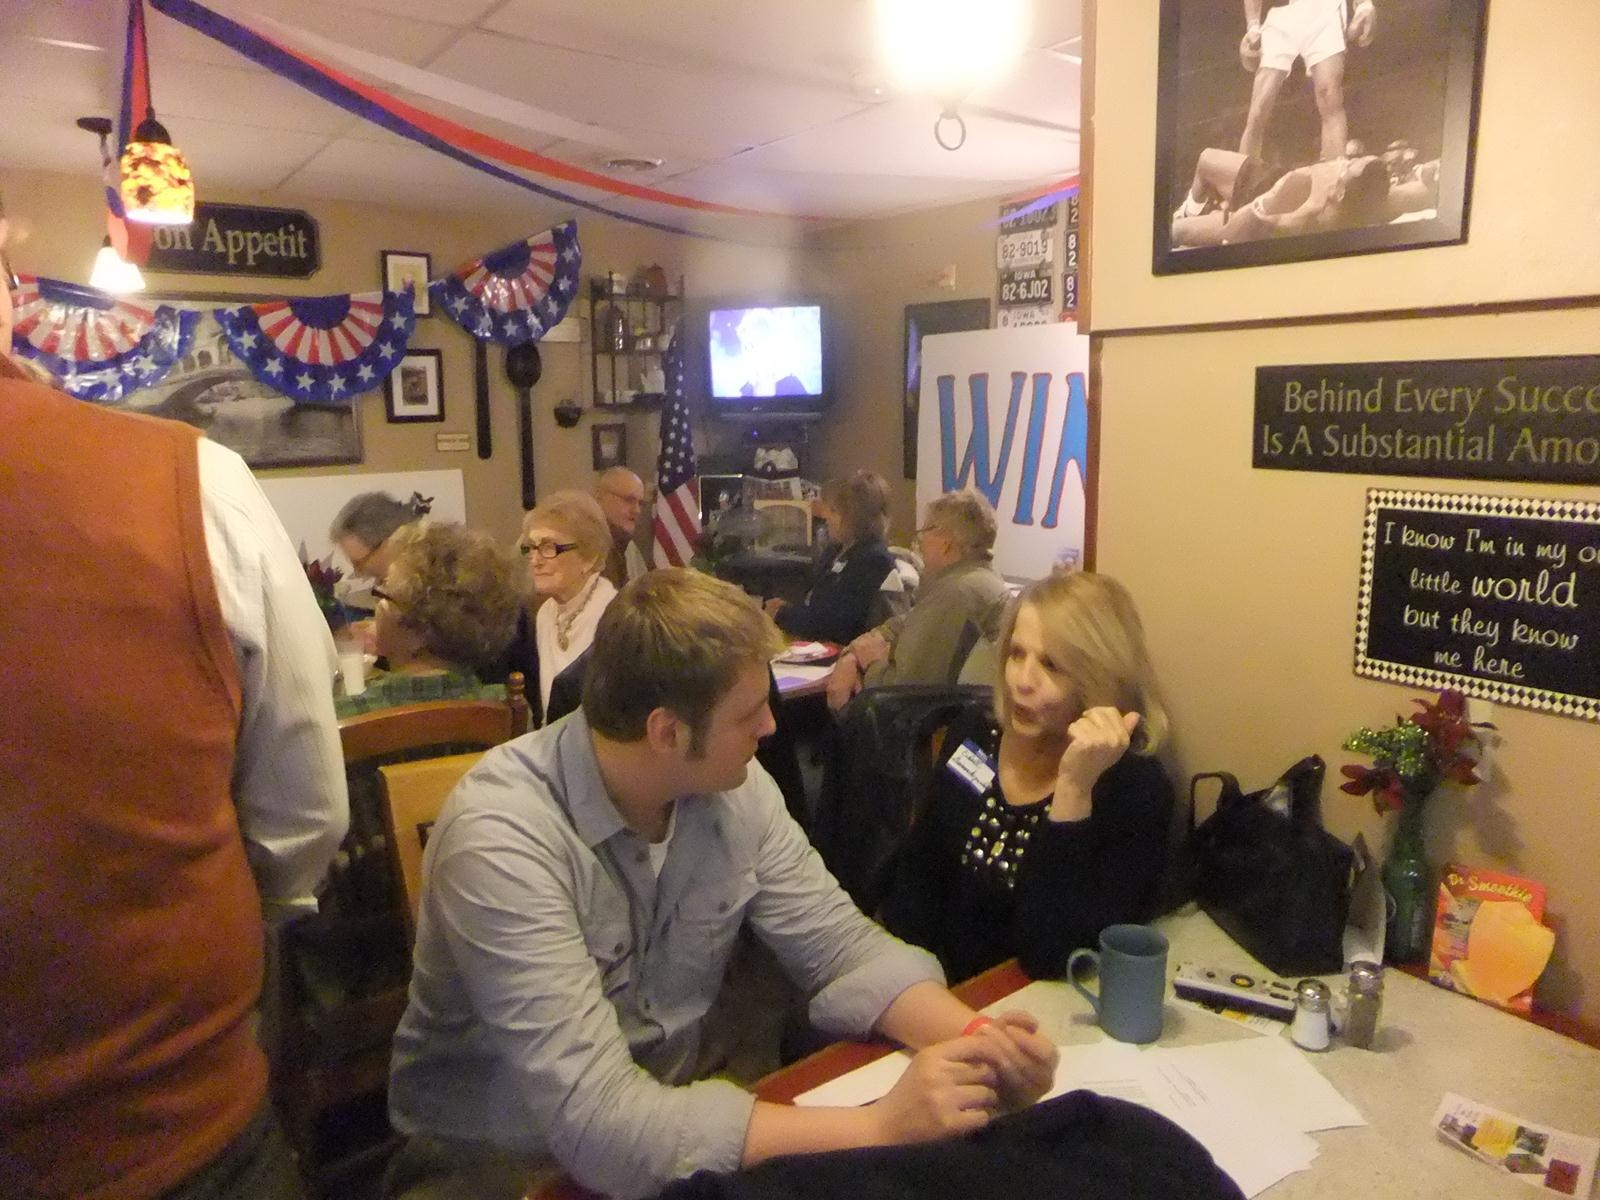 North Scott Co. SOTU Party - Welcoming the new guy